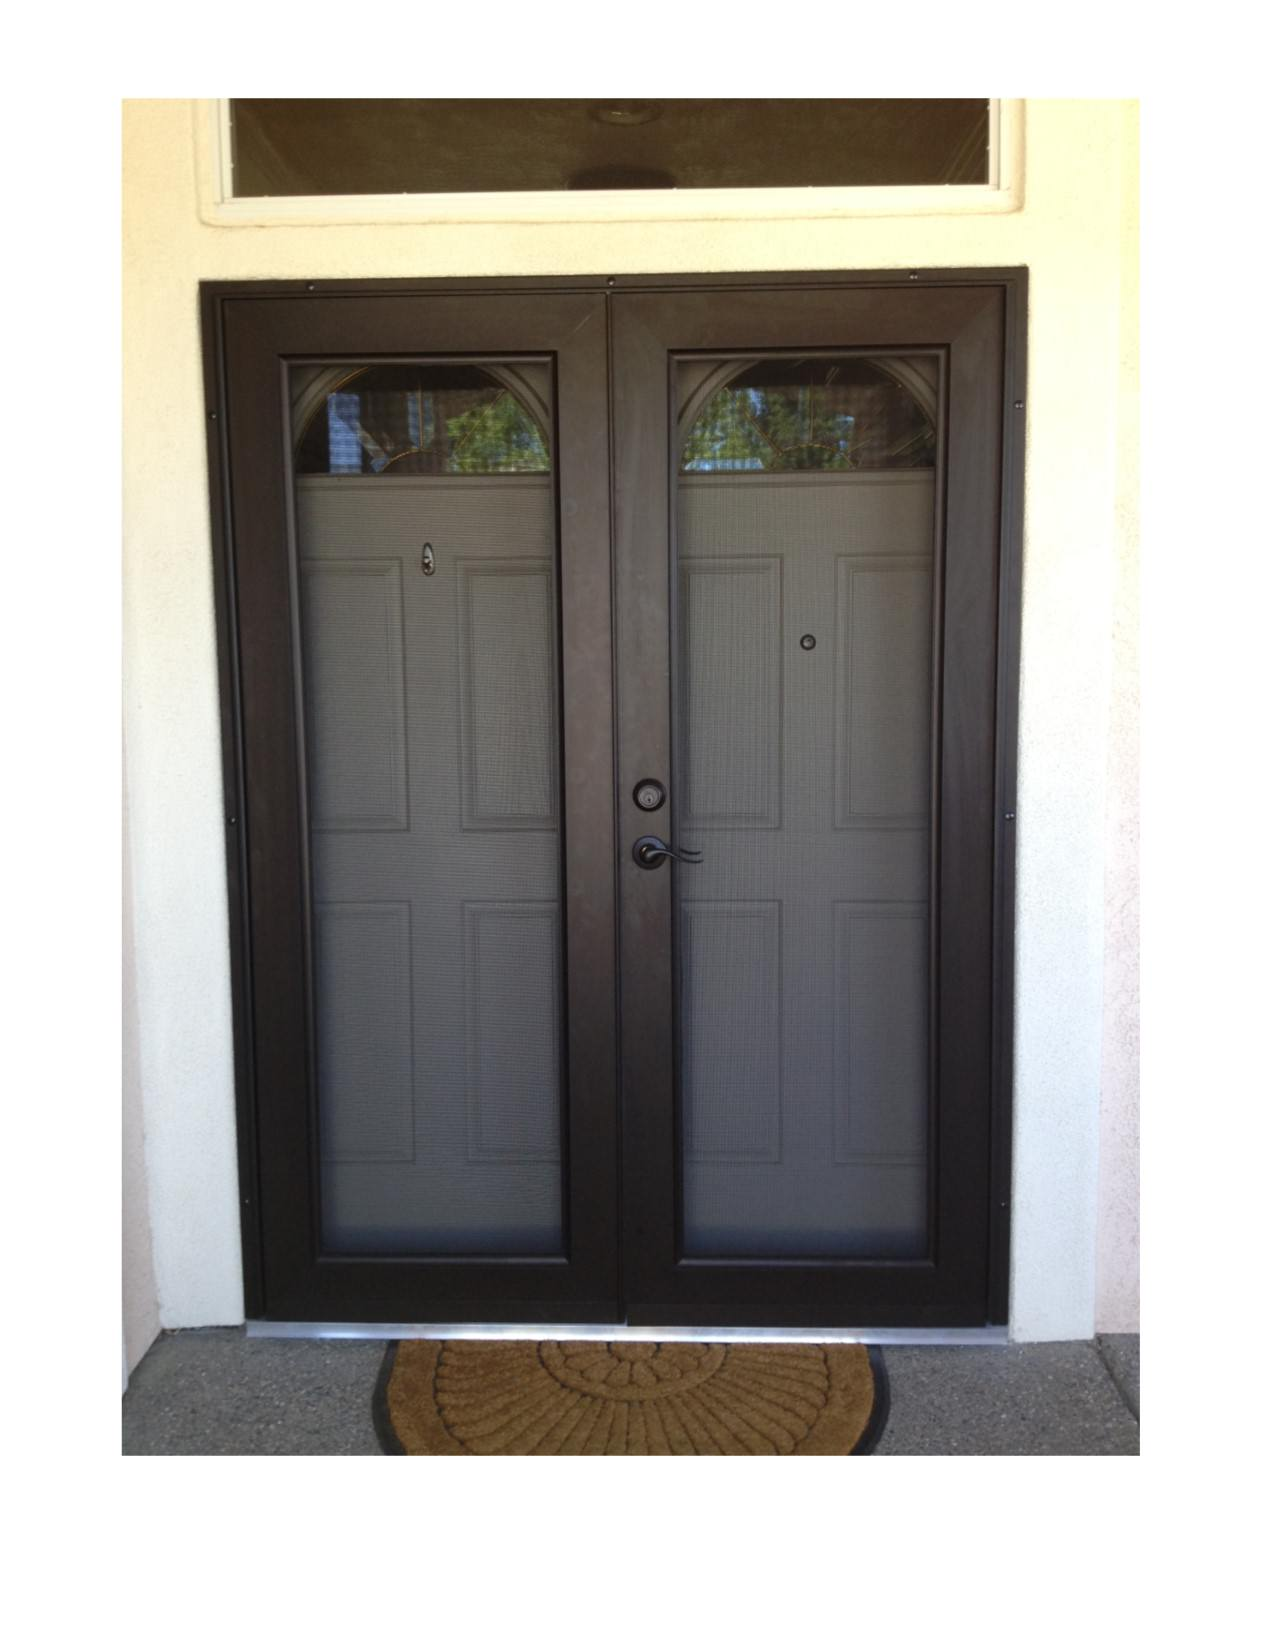 View guard security doors screens 4 less for Storm doors for double entry doors